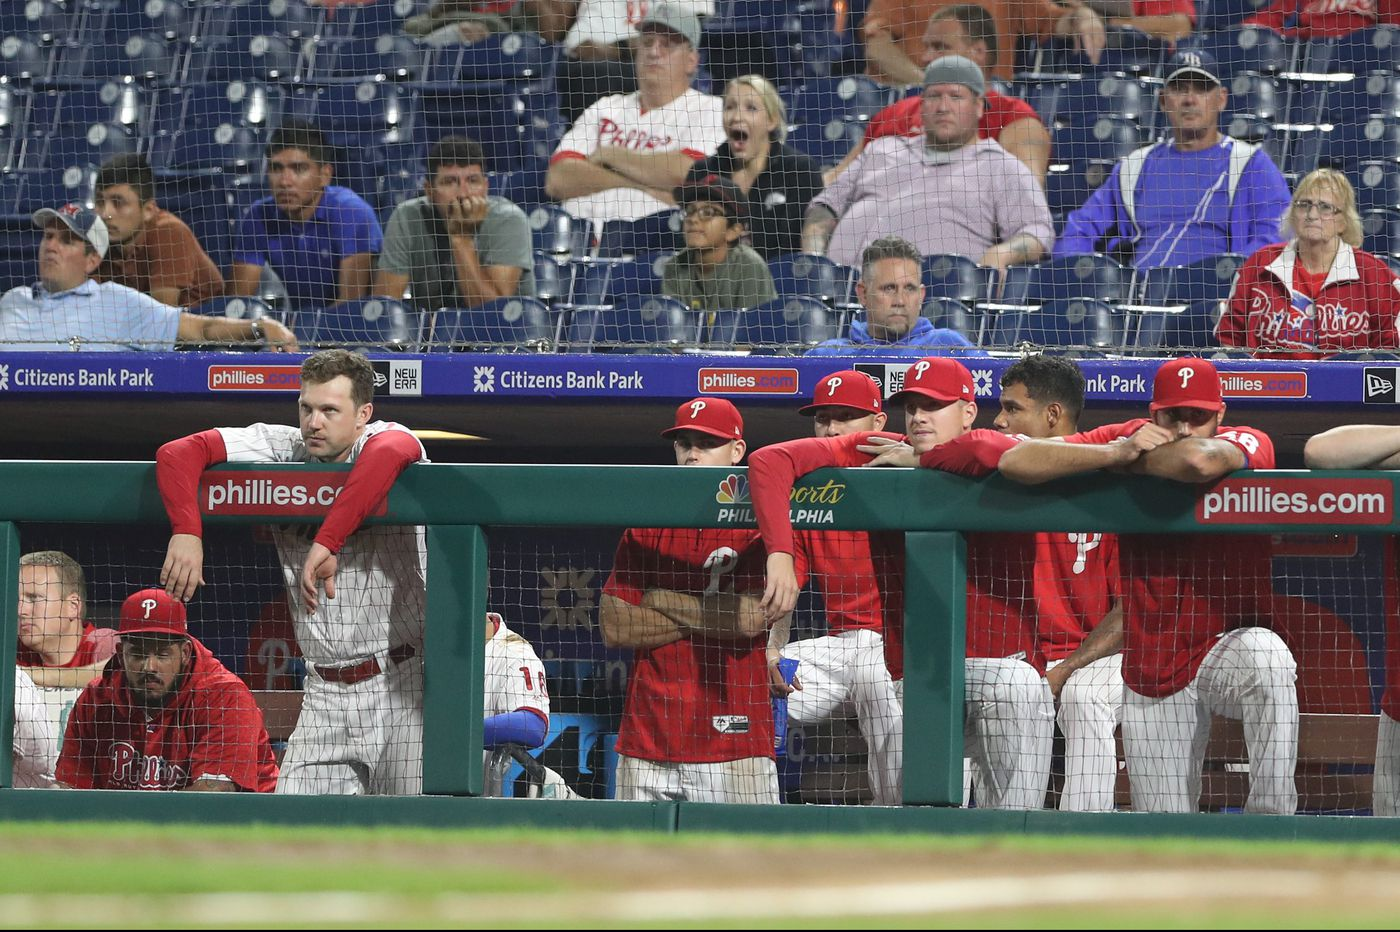 Late-season swoon has Phillies looking like the team we thought they were | Extra Innings